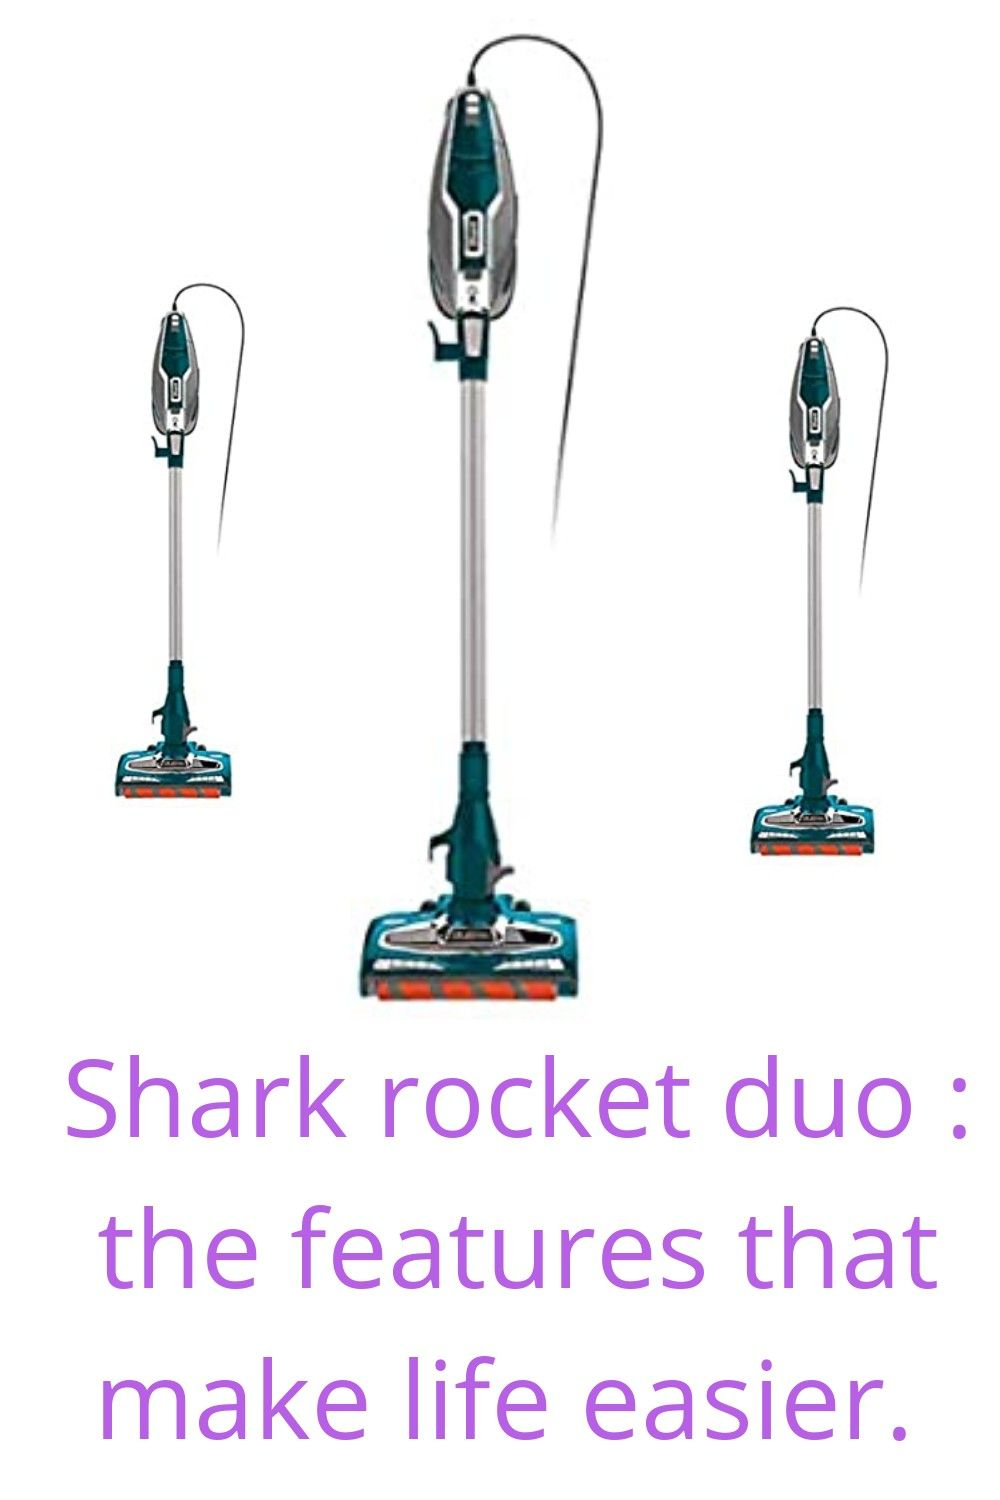 Shark rocket duo vacuum cleaner The features that make